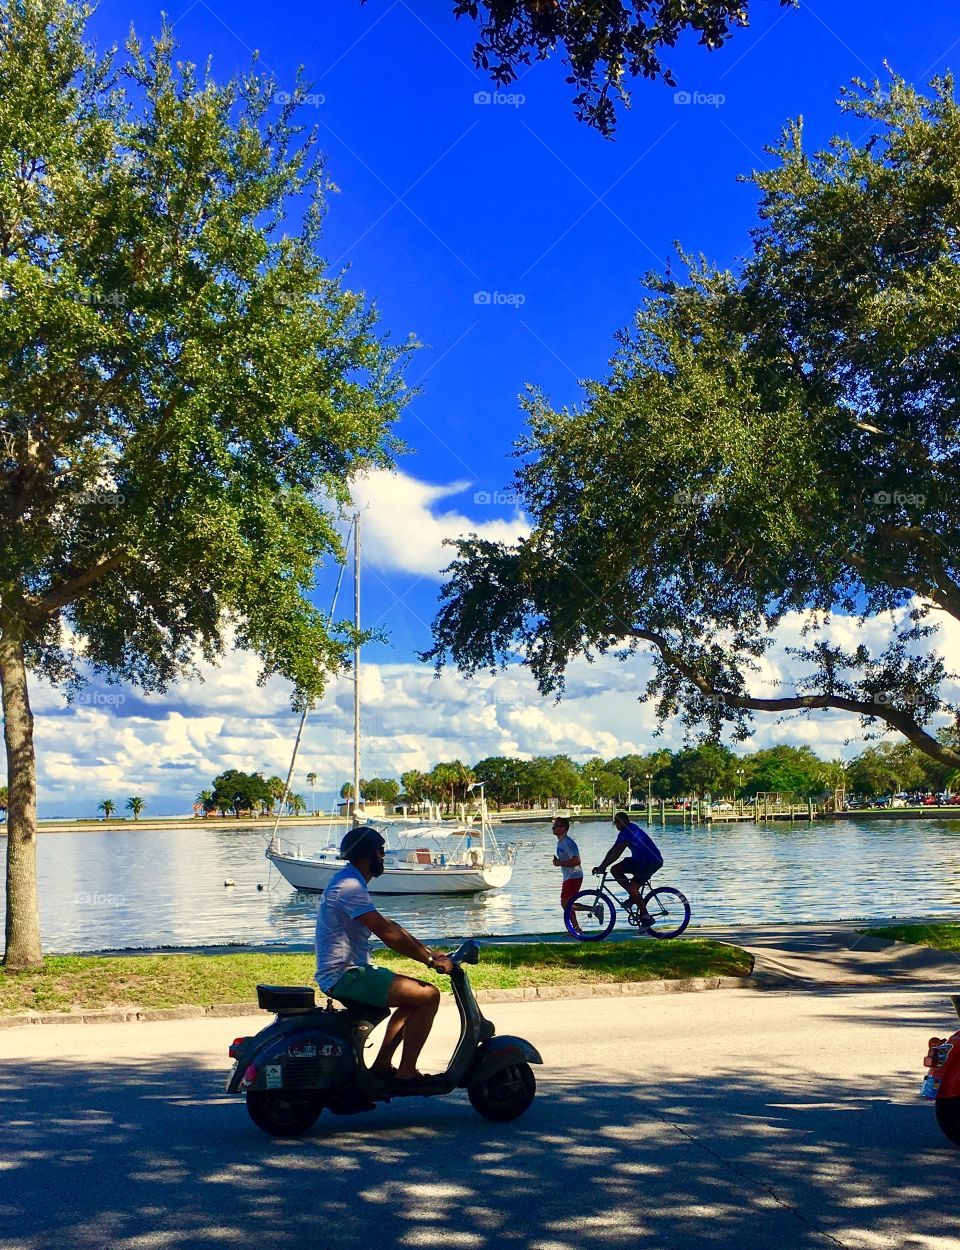 Vespa rider, jogger and Bicycler enjoying the day in St Petersburg FL